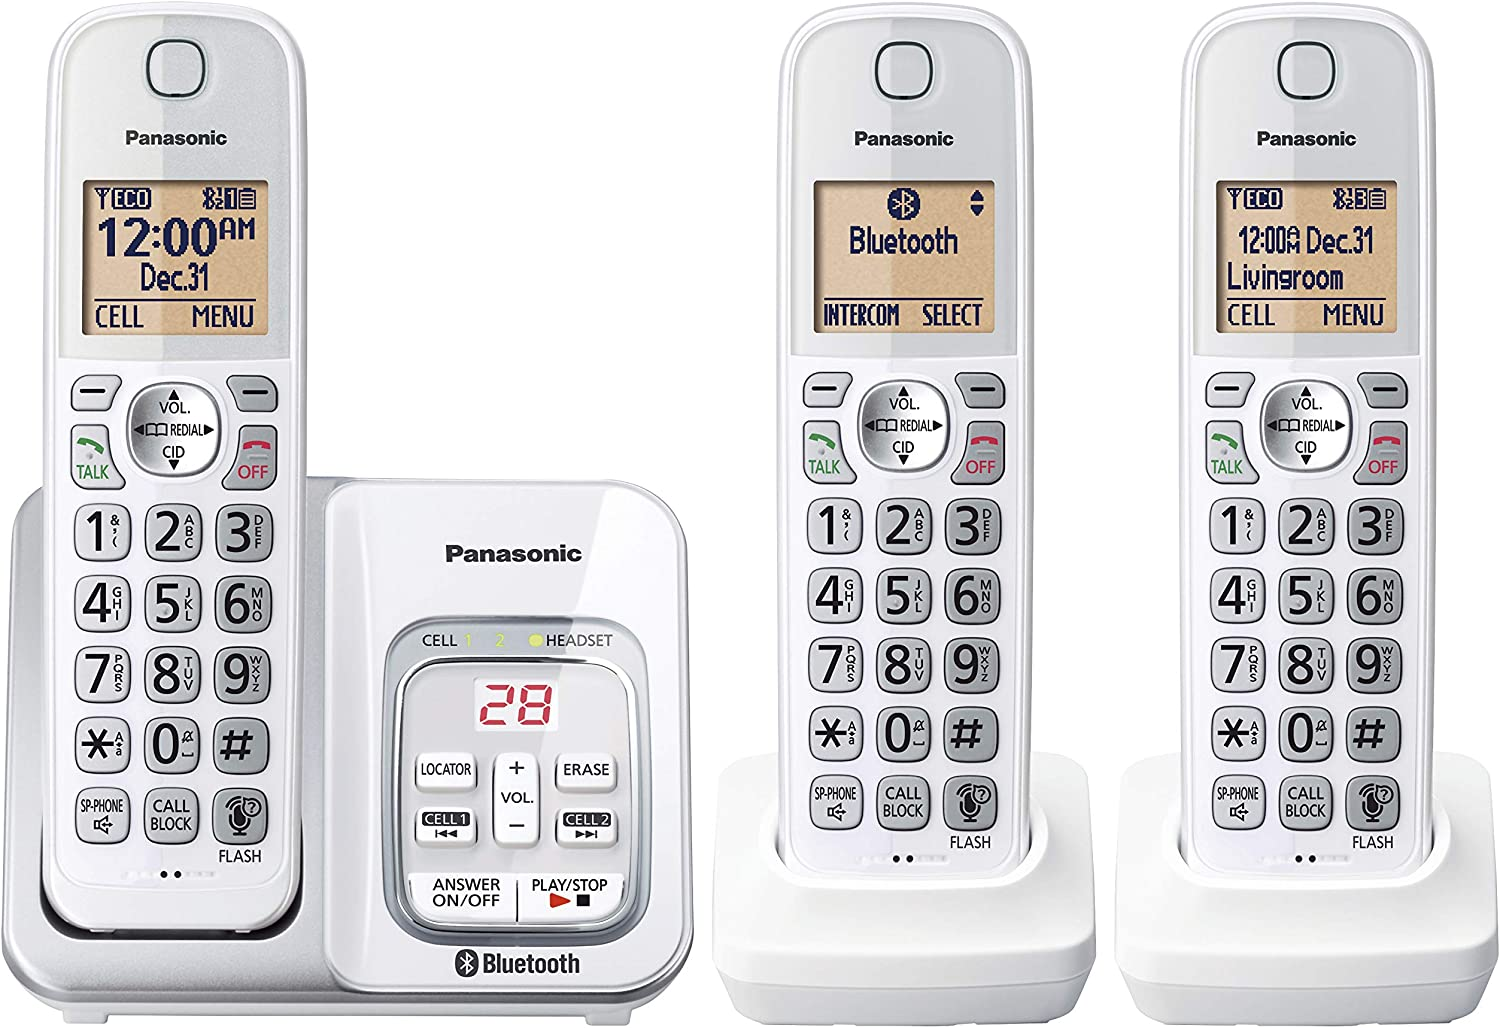 PANASONIC Expandable Cordless Phone System with Answering Machine, Link2Cell Bluetooth, Talking Caller ID, Call Block and and Intercom Voice Paging - 3 Cordless Handsets - KX-TG833SK1(White)